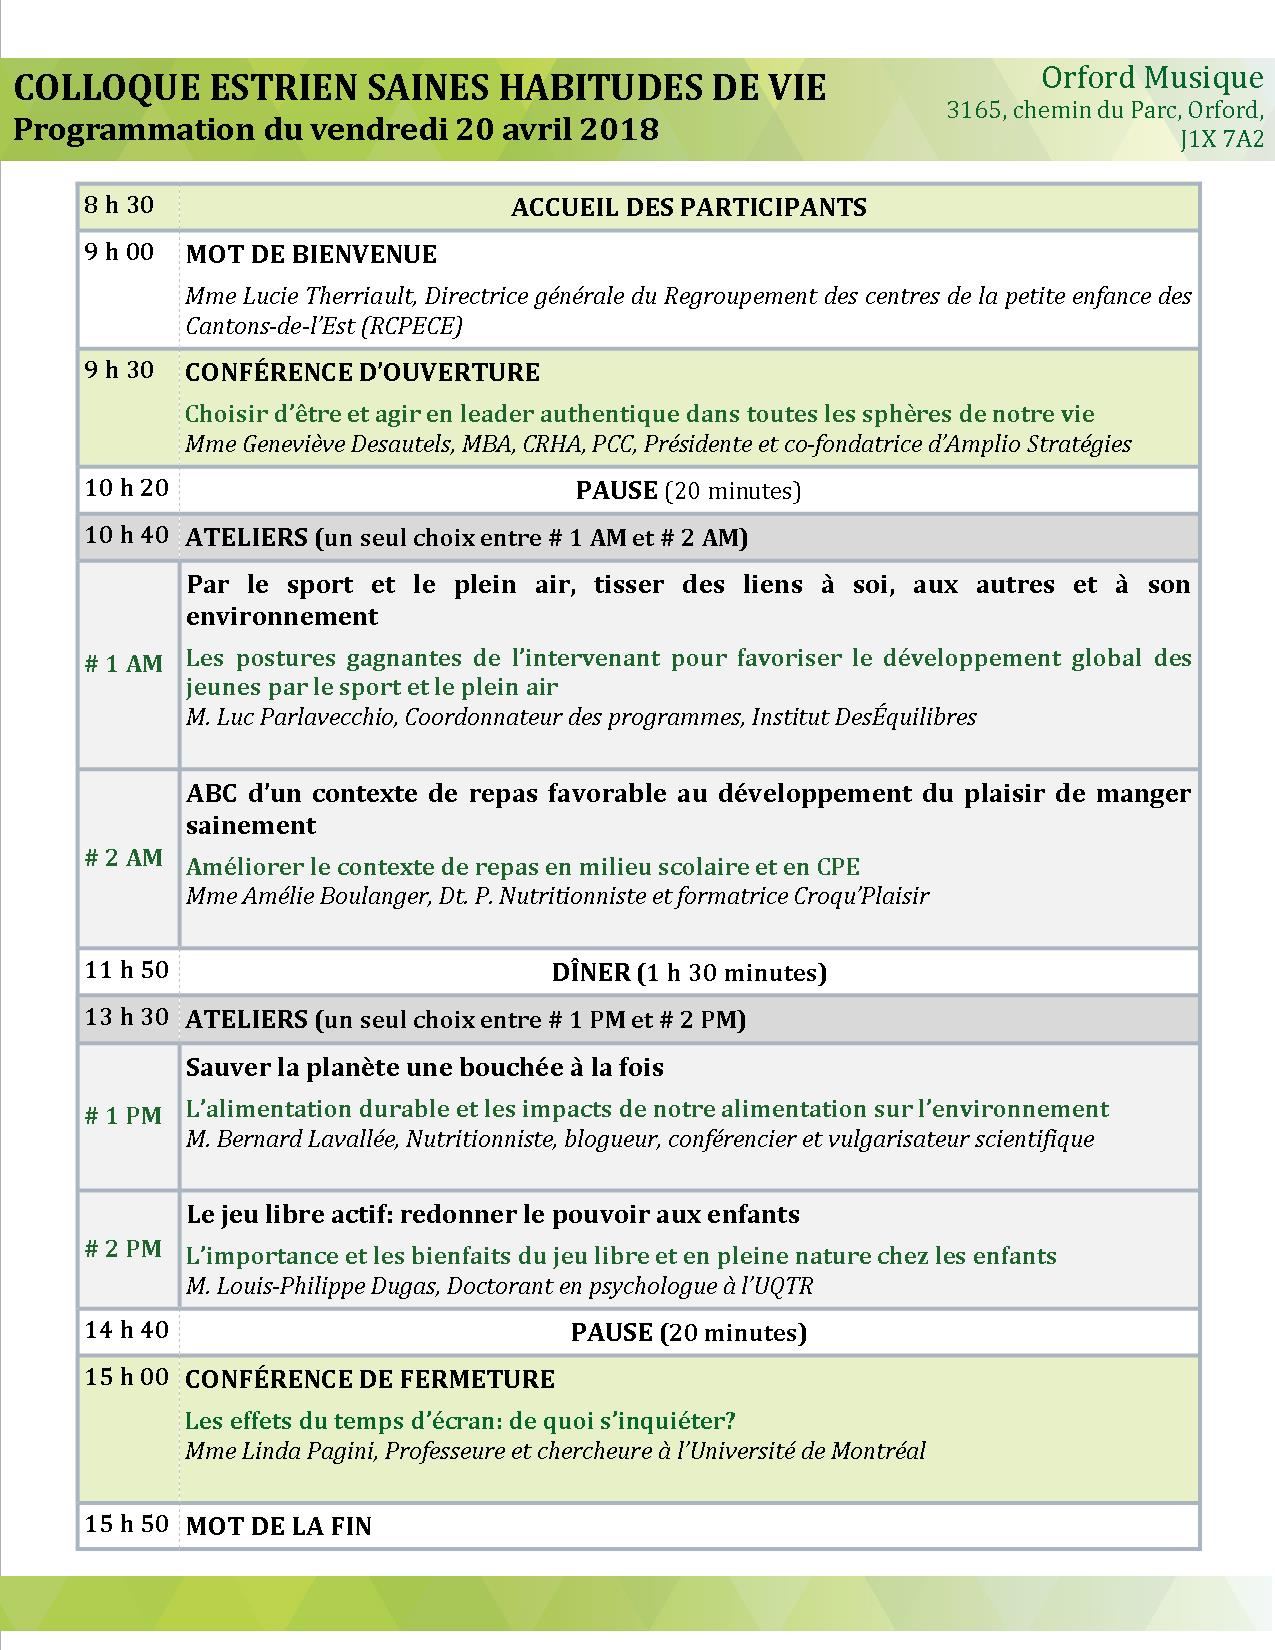 Programmation vendredi 20 avril 2018